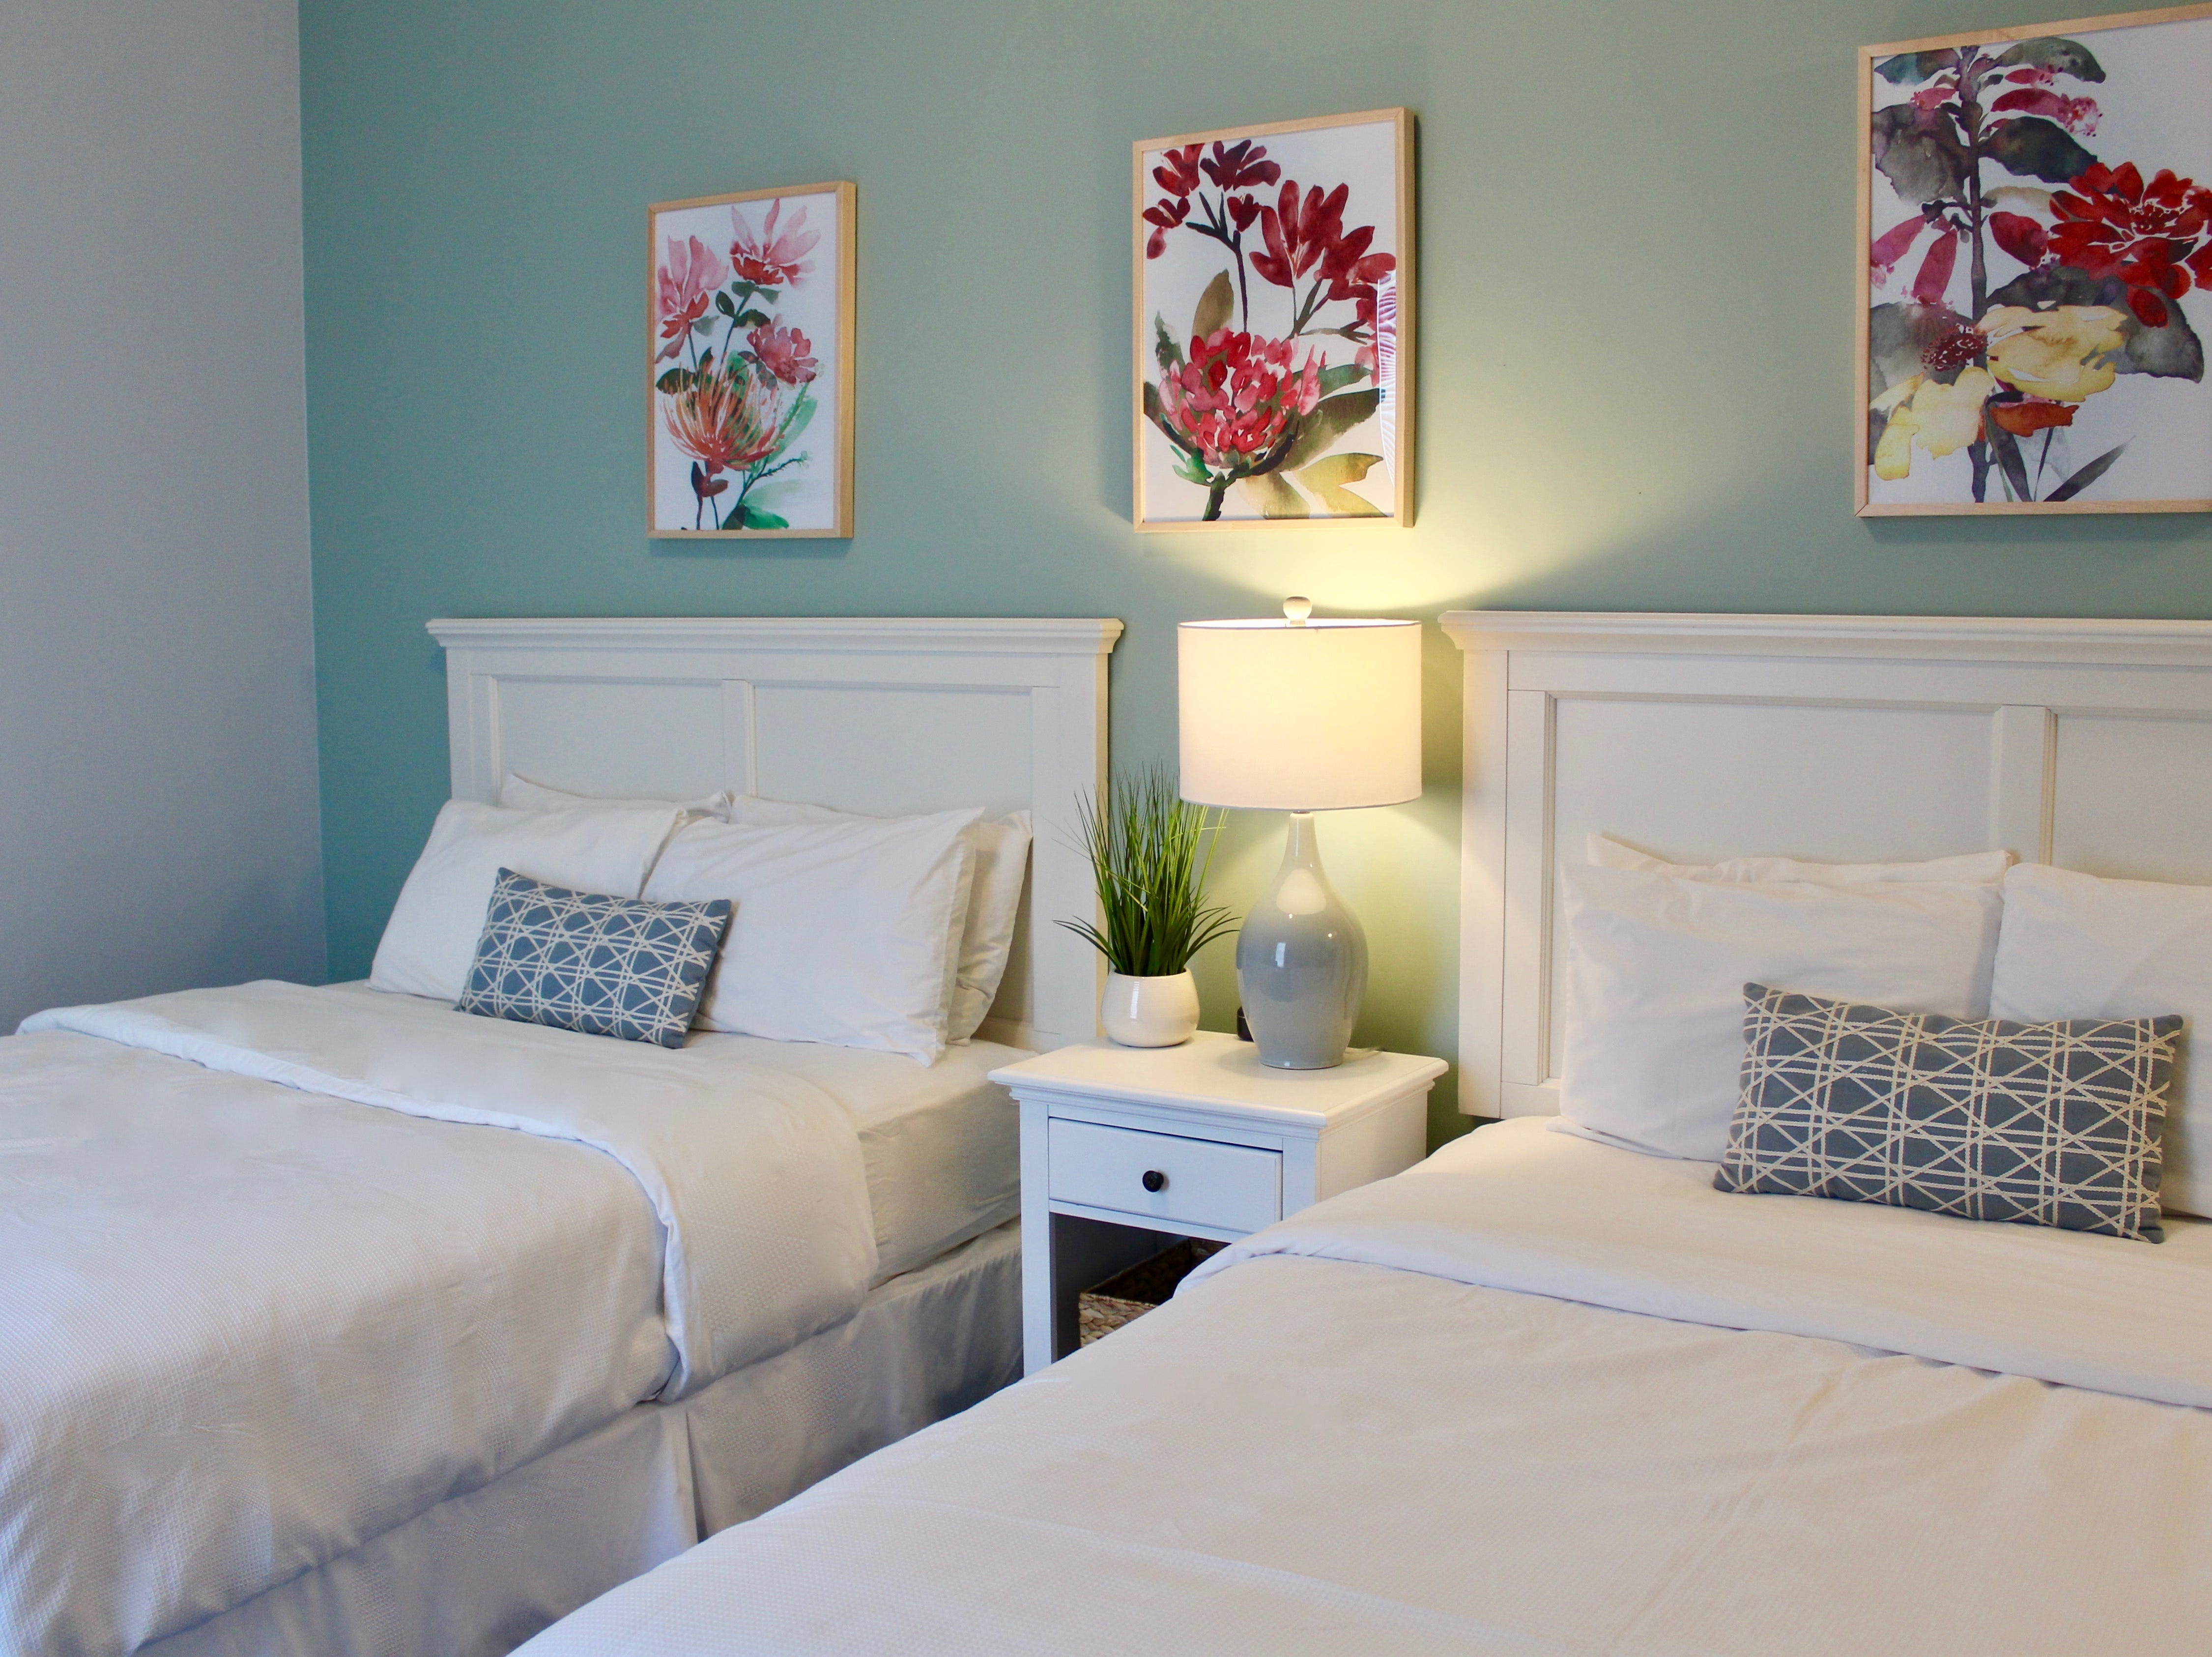 Pictured is one of the newly renovated rooms at Island House Hotel. All 90-plus rooms in the hotel are being renovated before the May 1, 2019 the start of the 2019 season. About half of the rooms are complete.